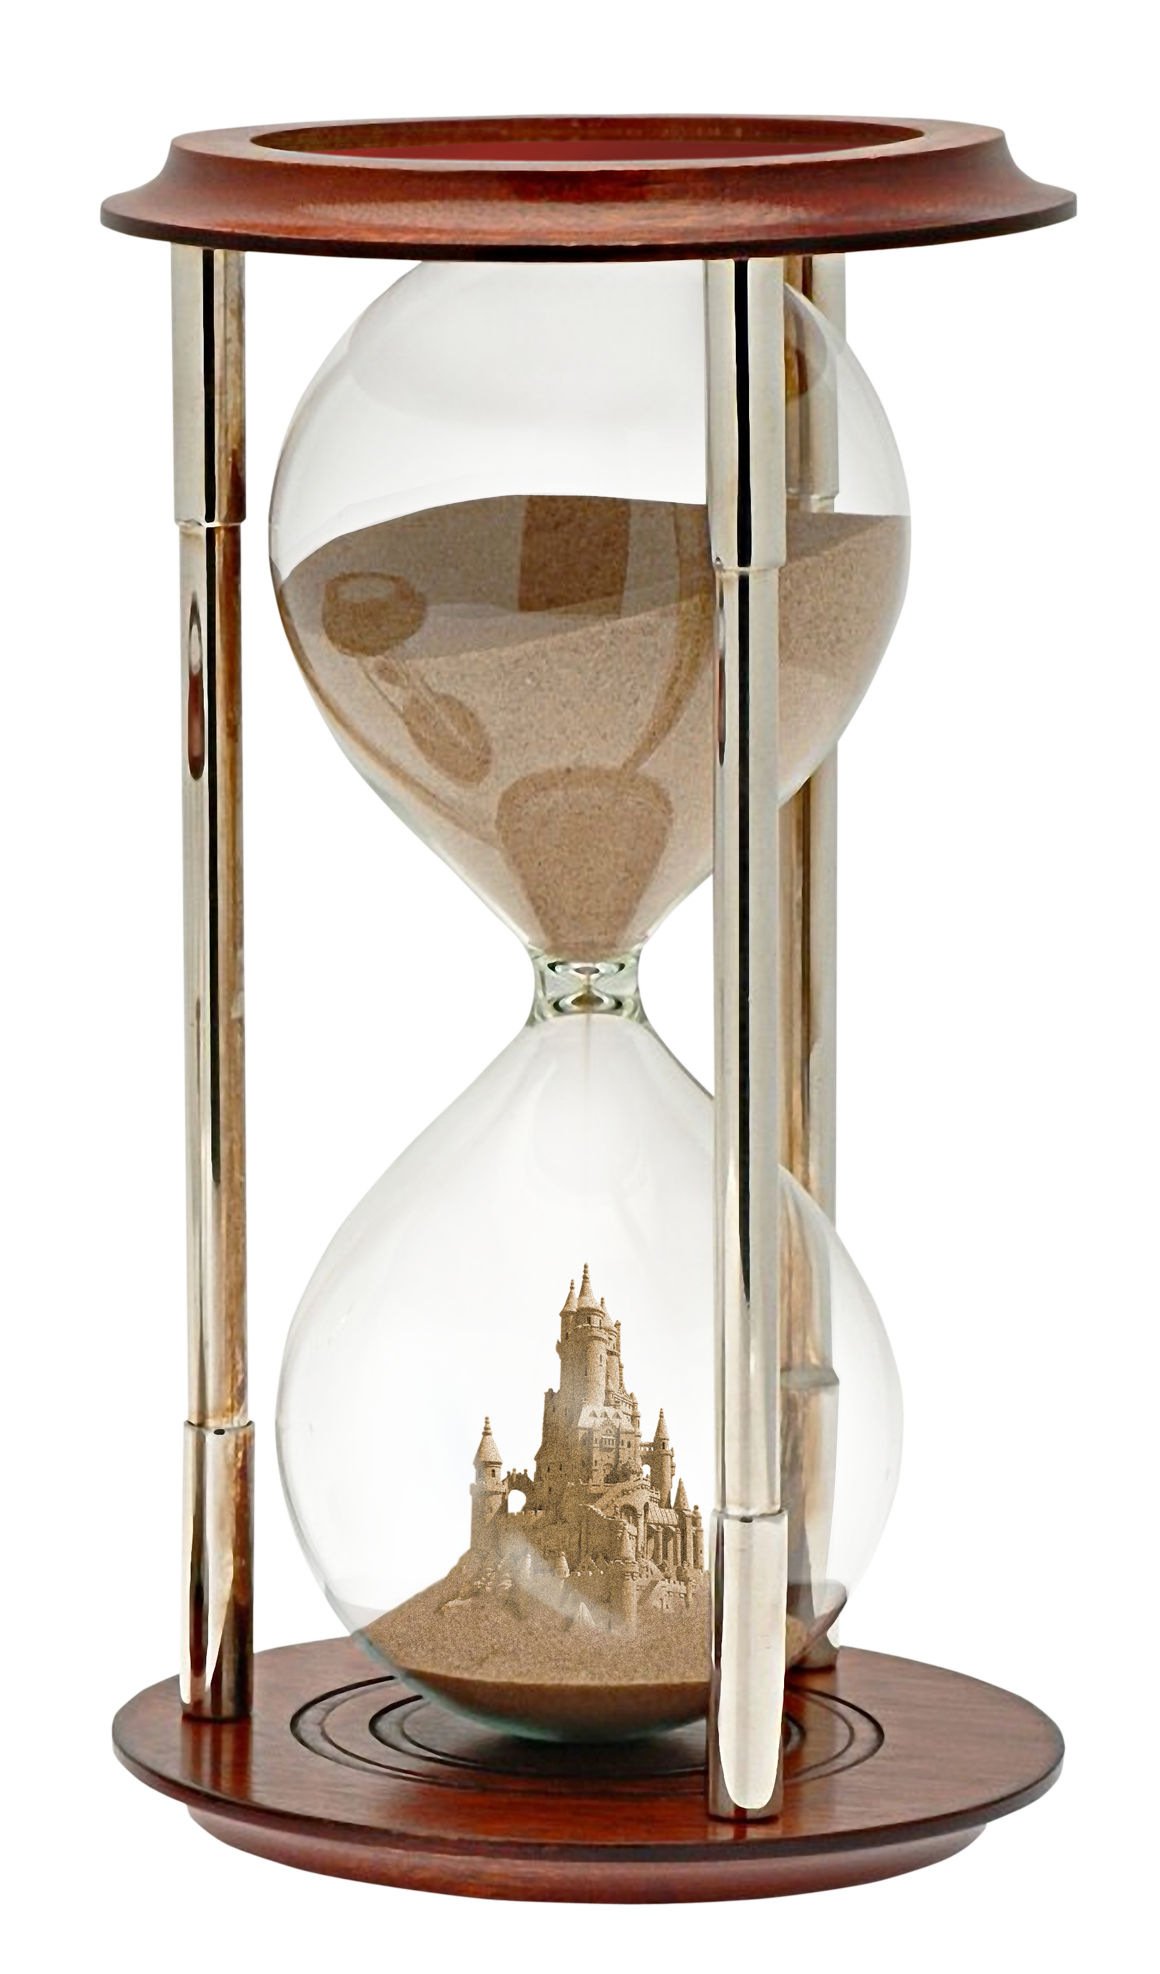 Hourglass PNG - 28161